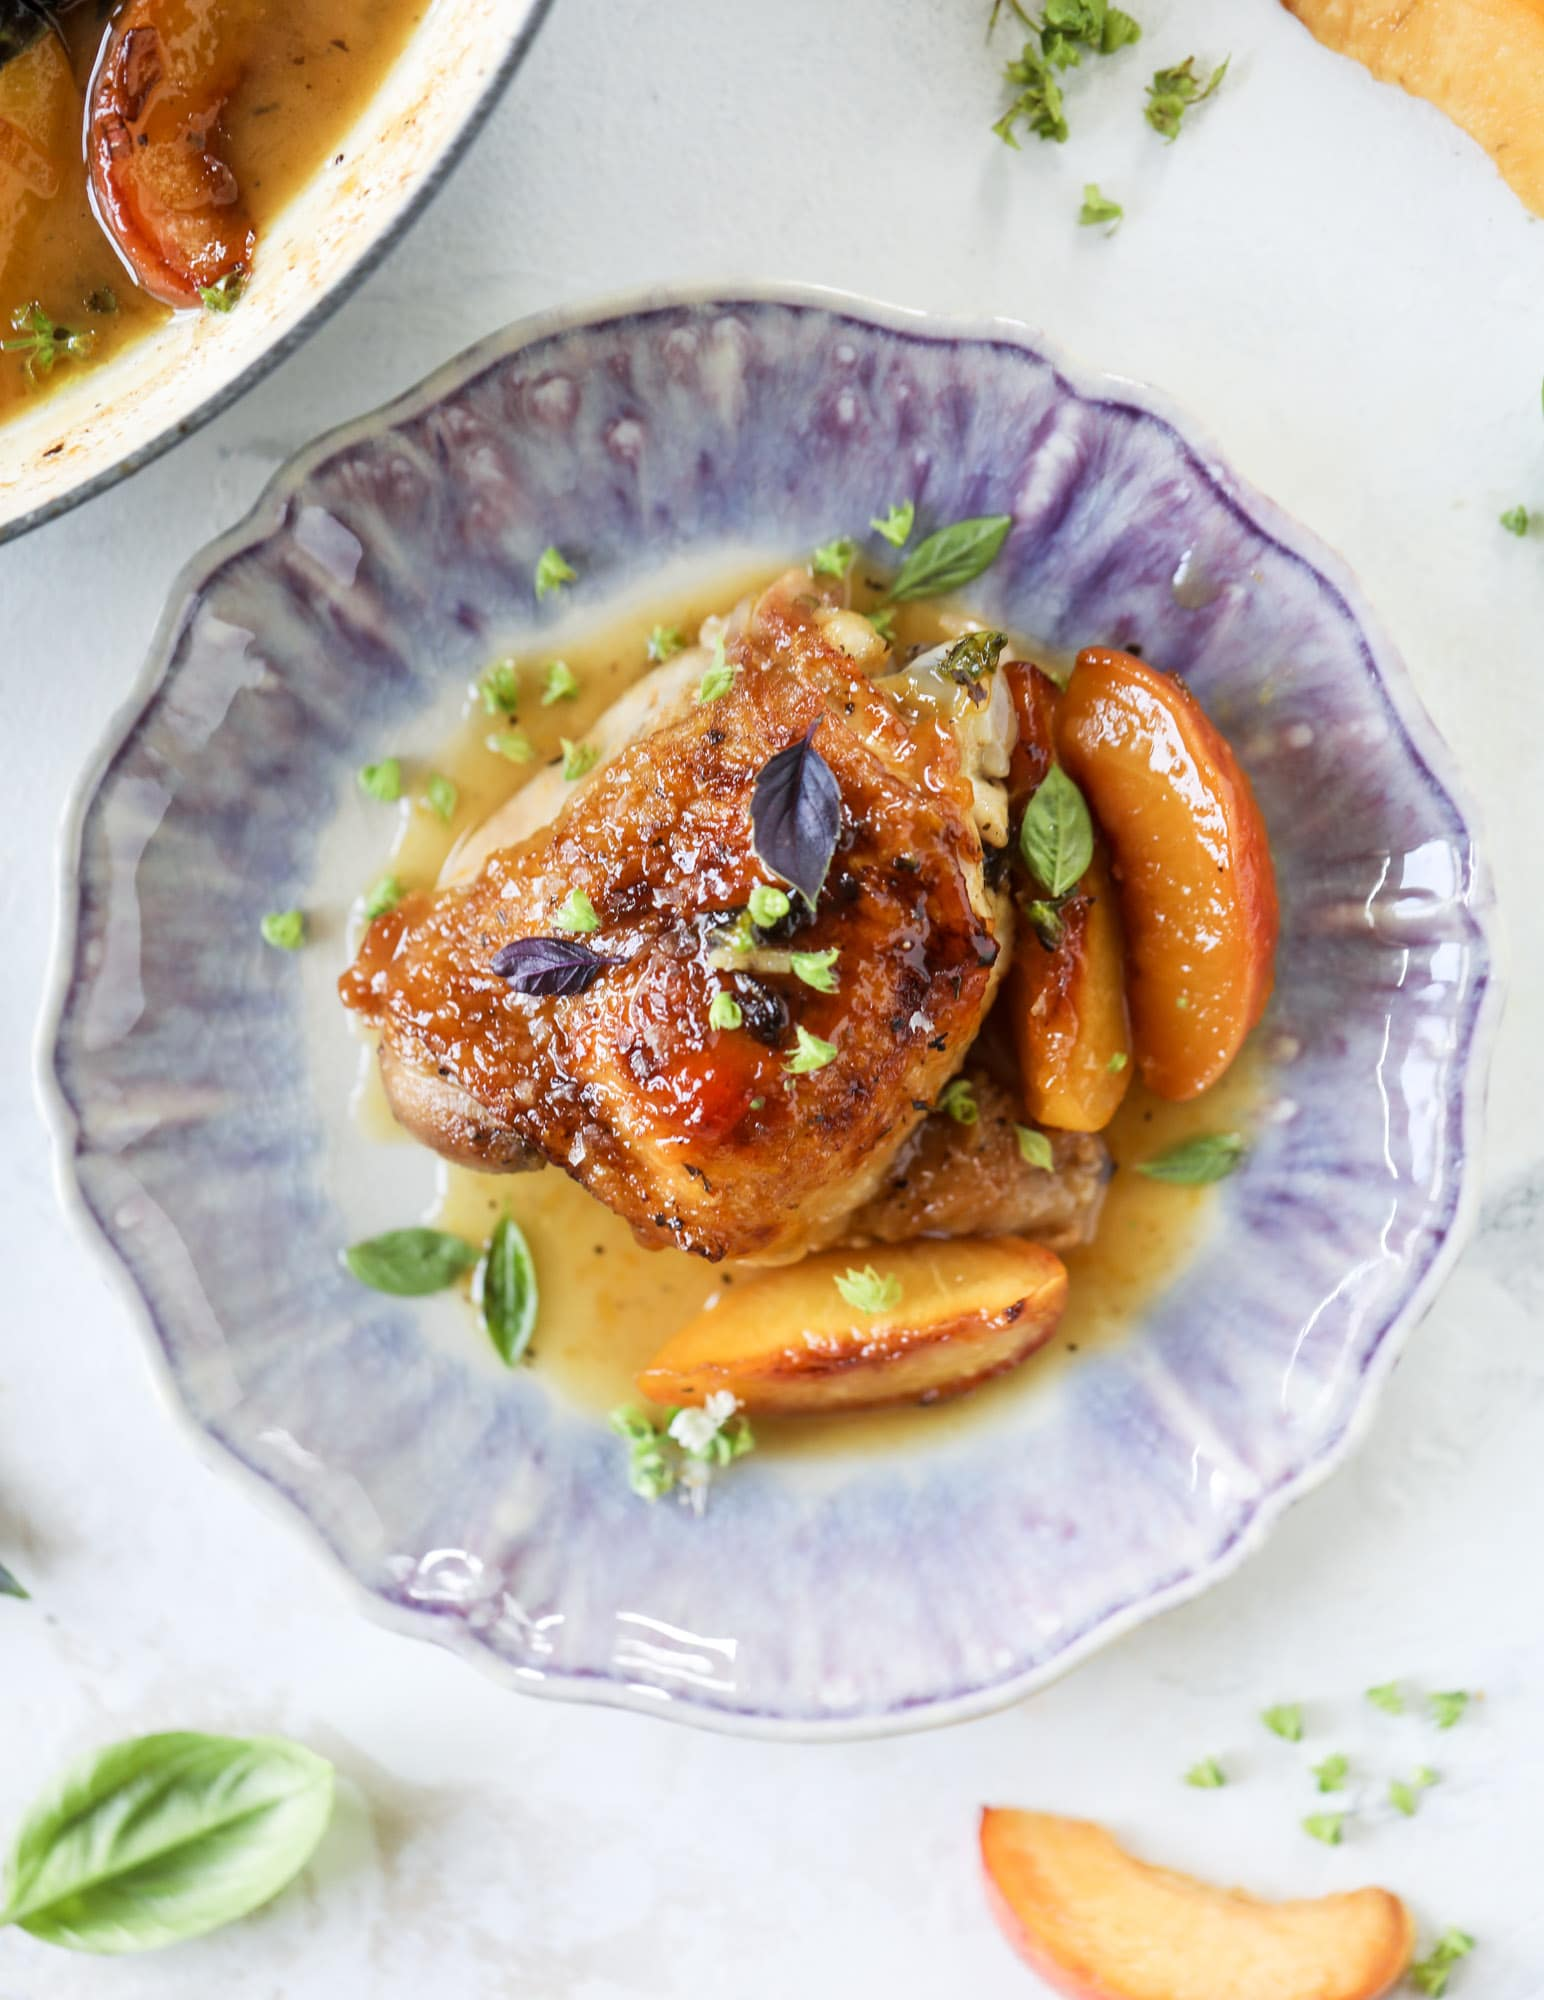 This amazing summertime one pot chicken is made with fresh peaches and basil and takes no time at all. The sweet and savory combination is perfect for a quick weeknight meal; the sauce is amazing for dipping and the chicken is flavorful as can be. I howsweeteats.com #chicken #peach #basil #easy #dinner #recipe #summer #healthy